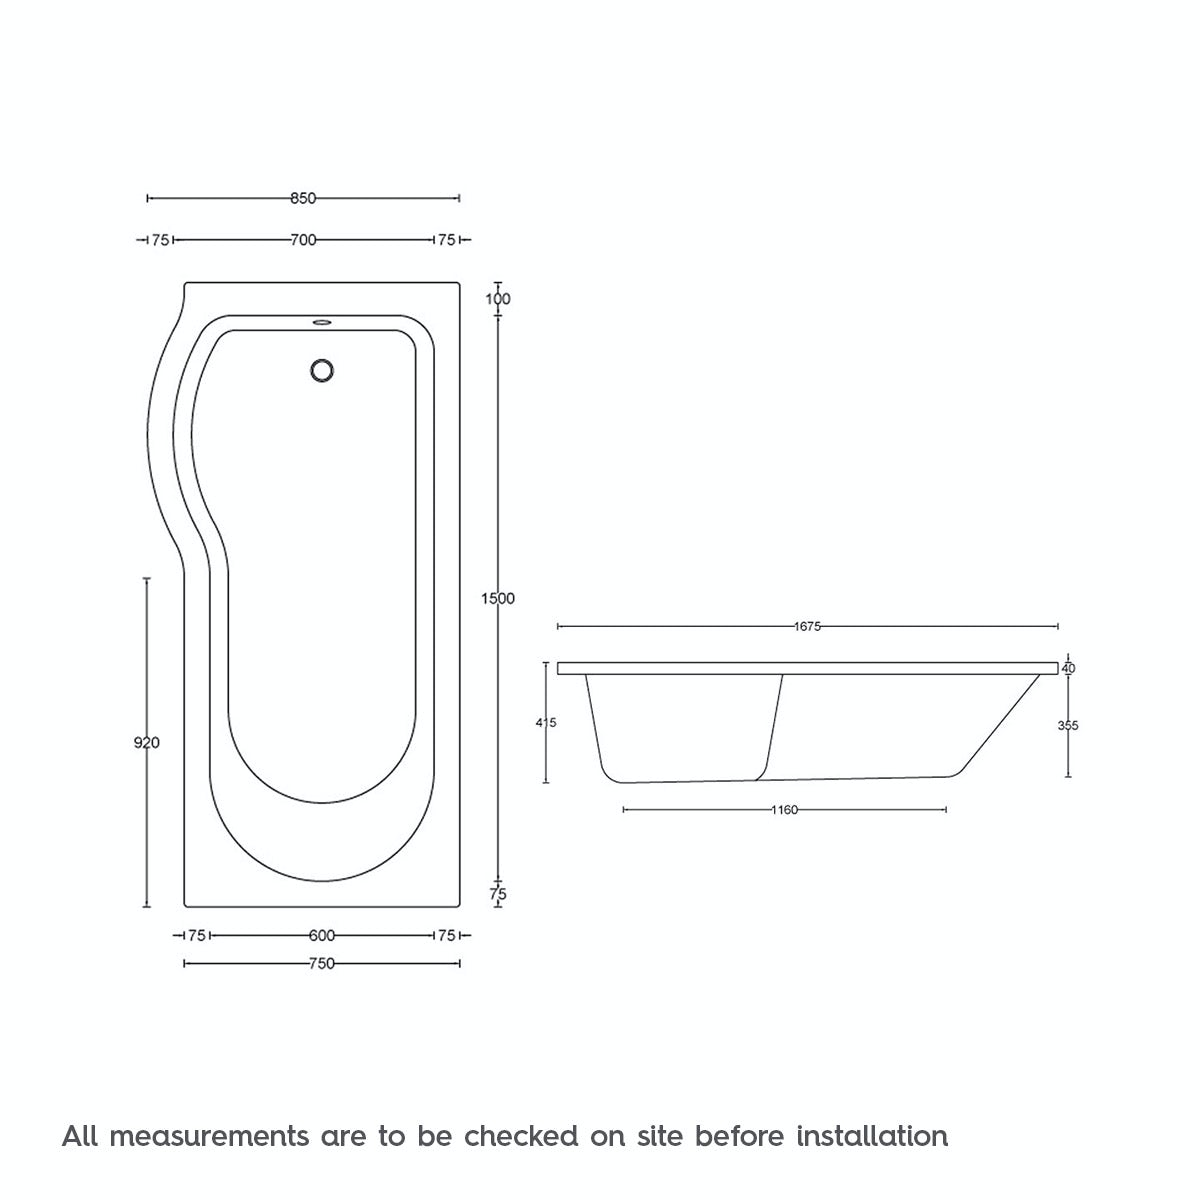 Dimensions for P shaped left handed 12 jet whirlpool shower bath with front panel and screen